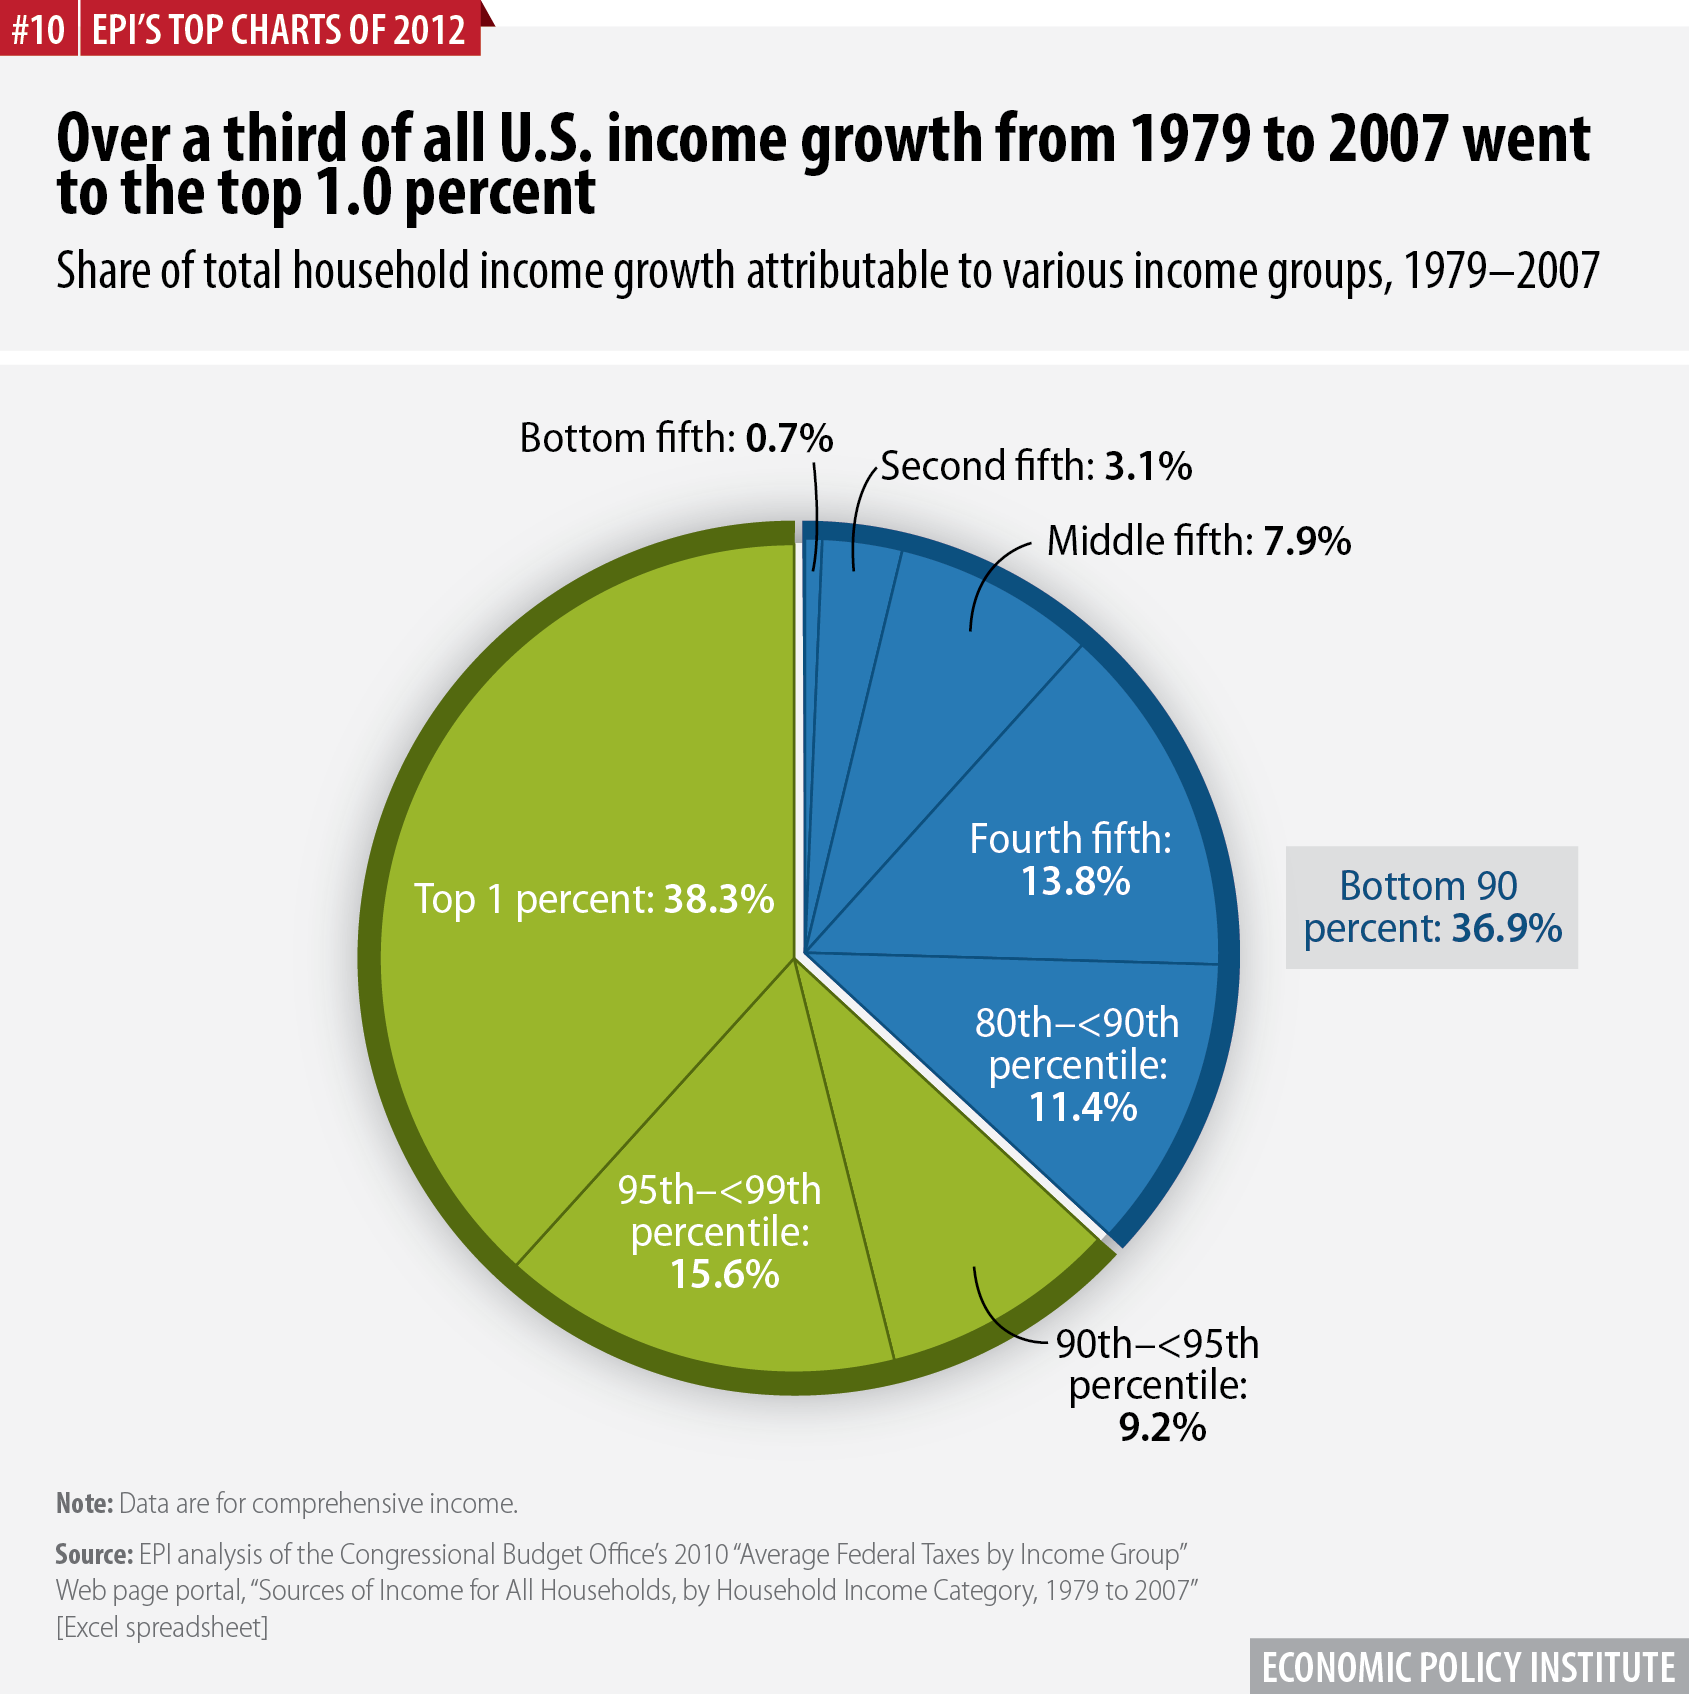 Over a third of all U.S. income growth from 1979 to 2007 went to the top 1.0 percent | Share of total household income growth attributable to various income groups, 1979–2007